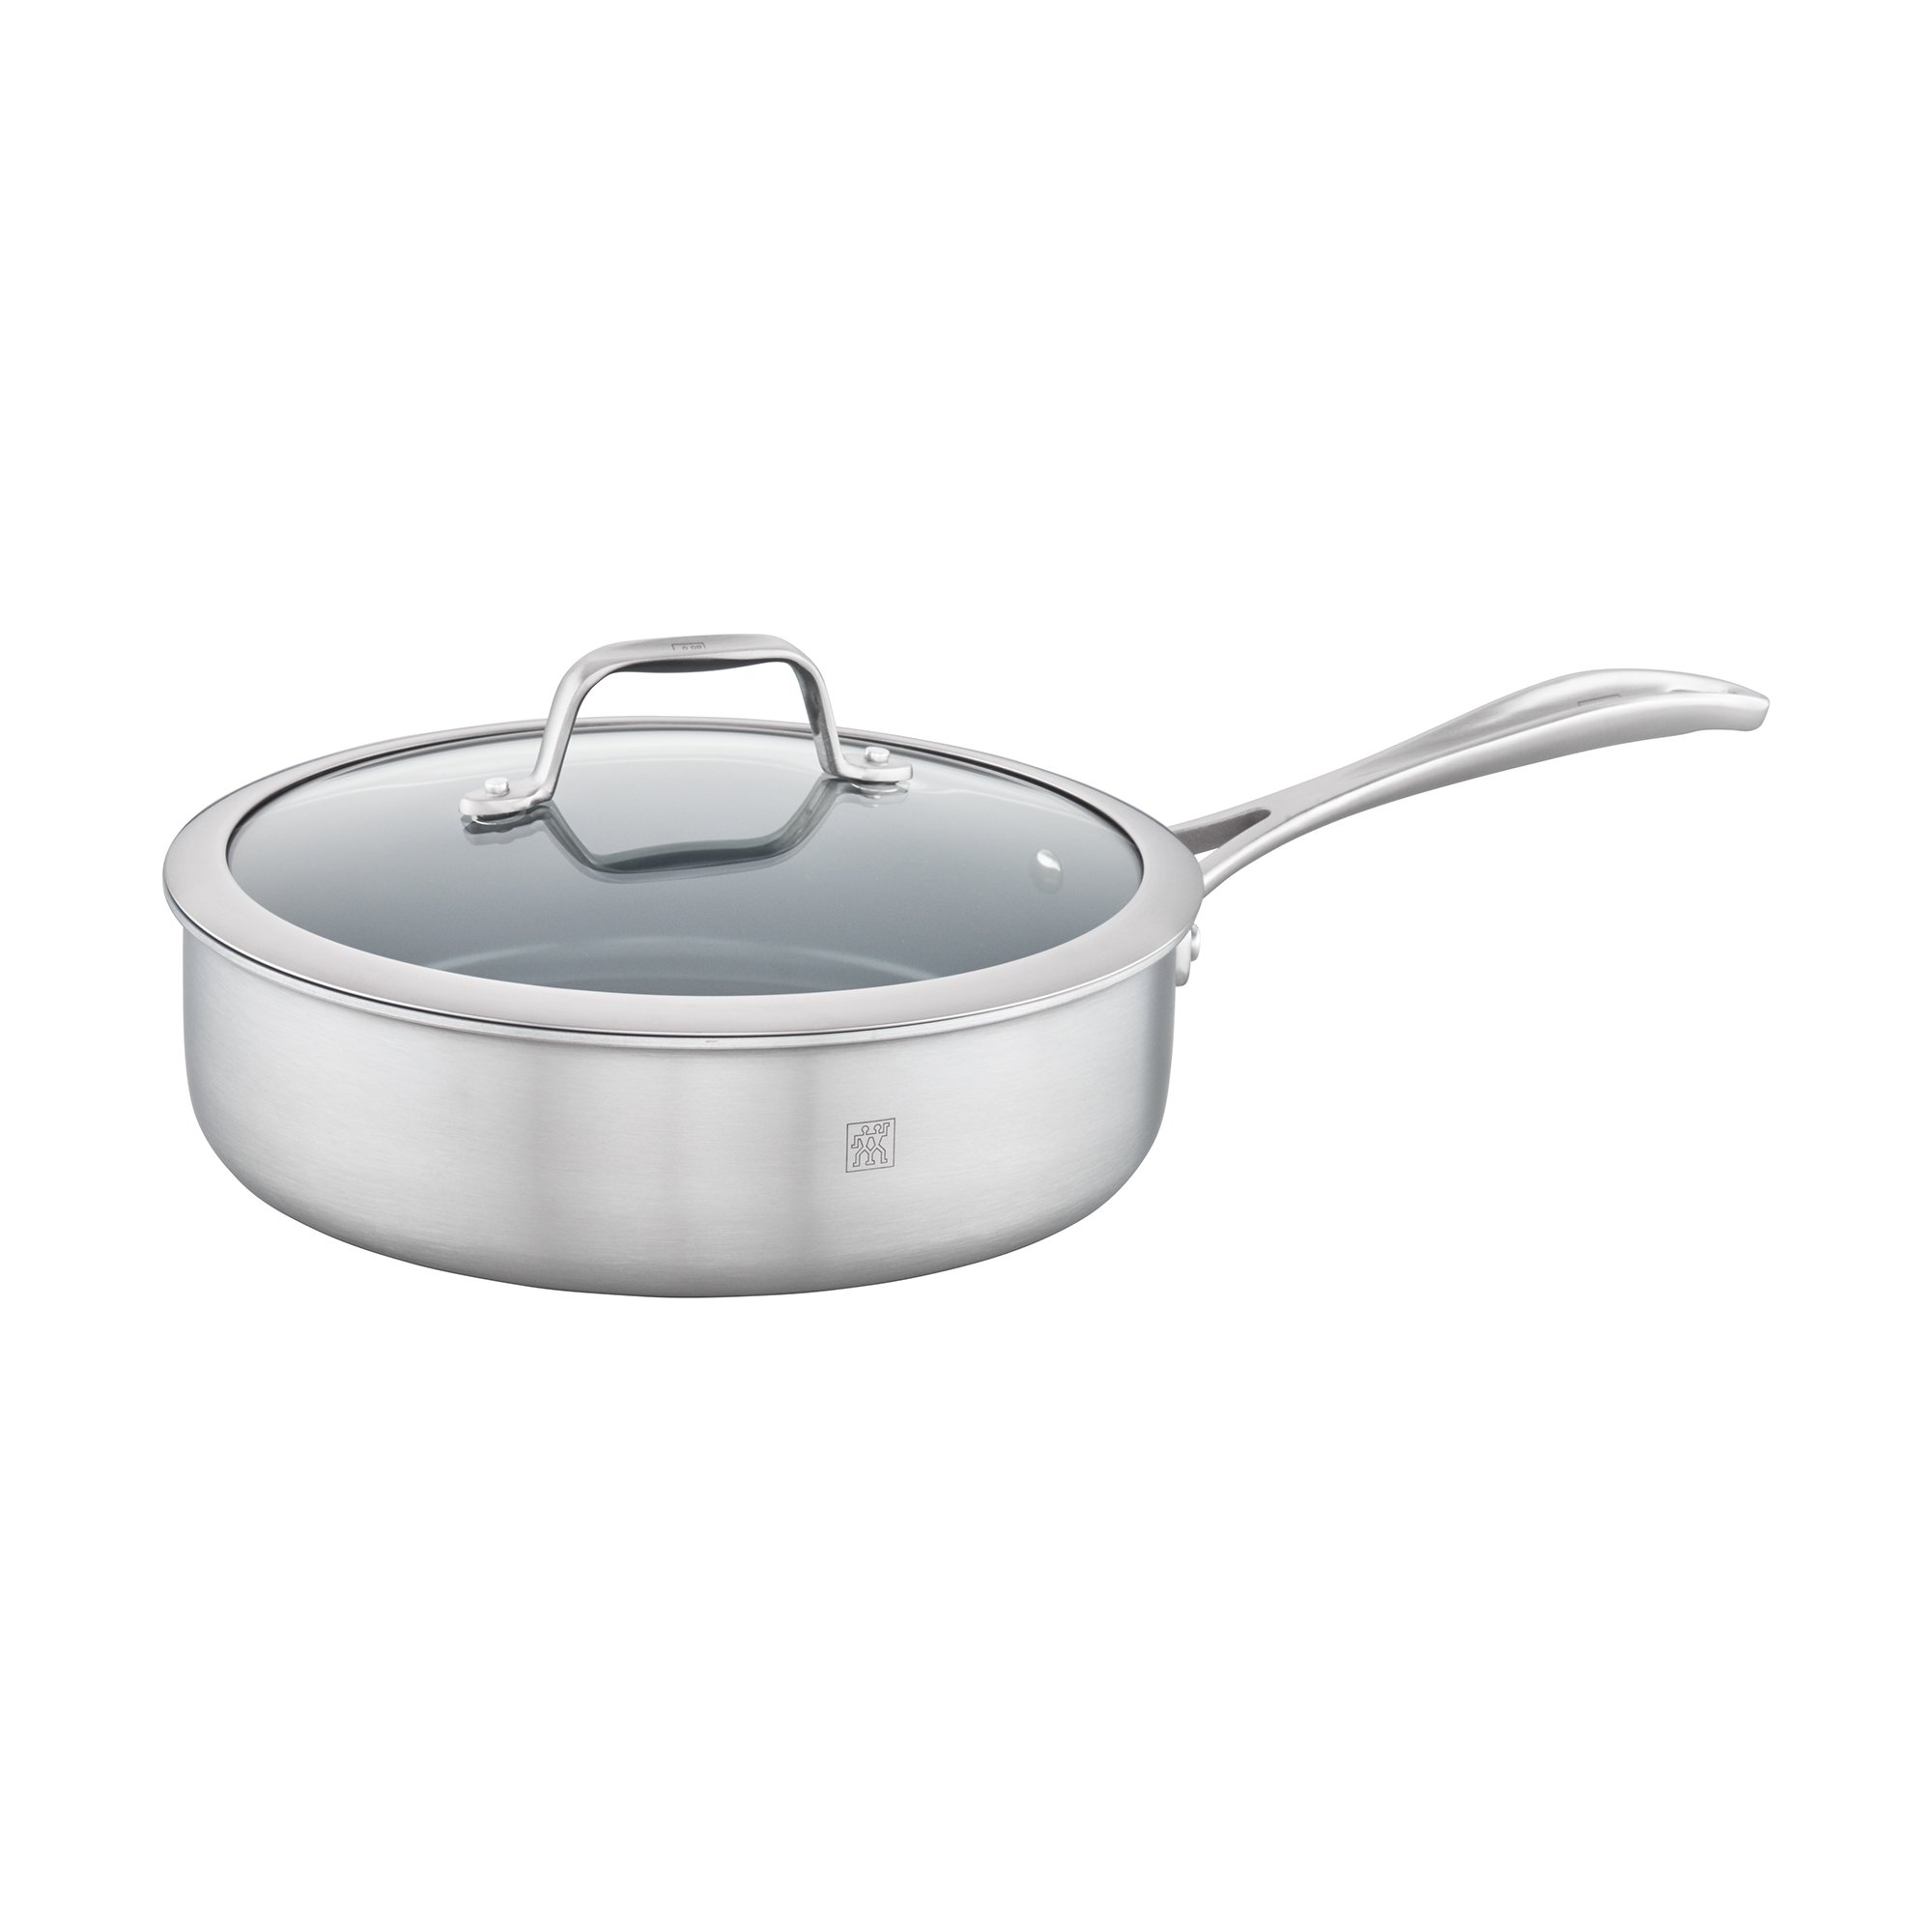 ZWILLING Spirit 3-ply 3-qt Stainless Steel Ceramic Nonstick Saute Pan